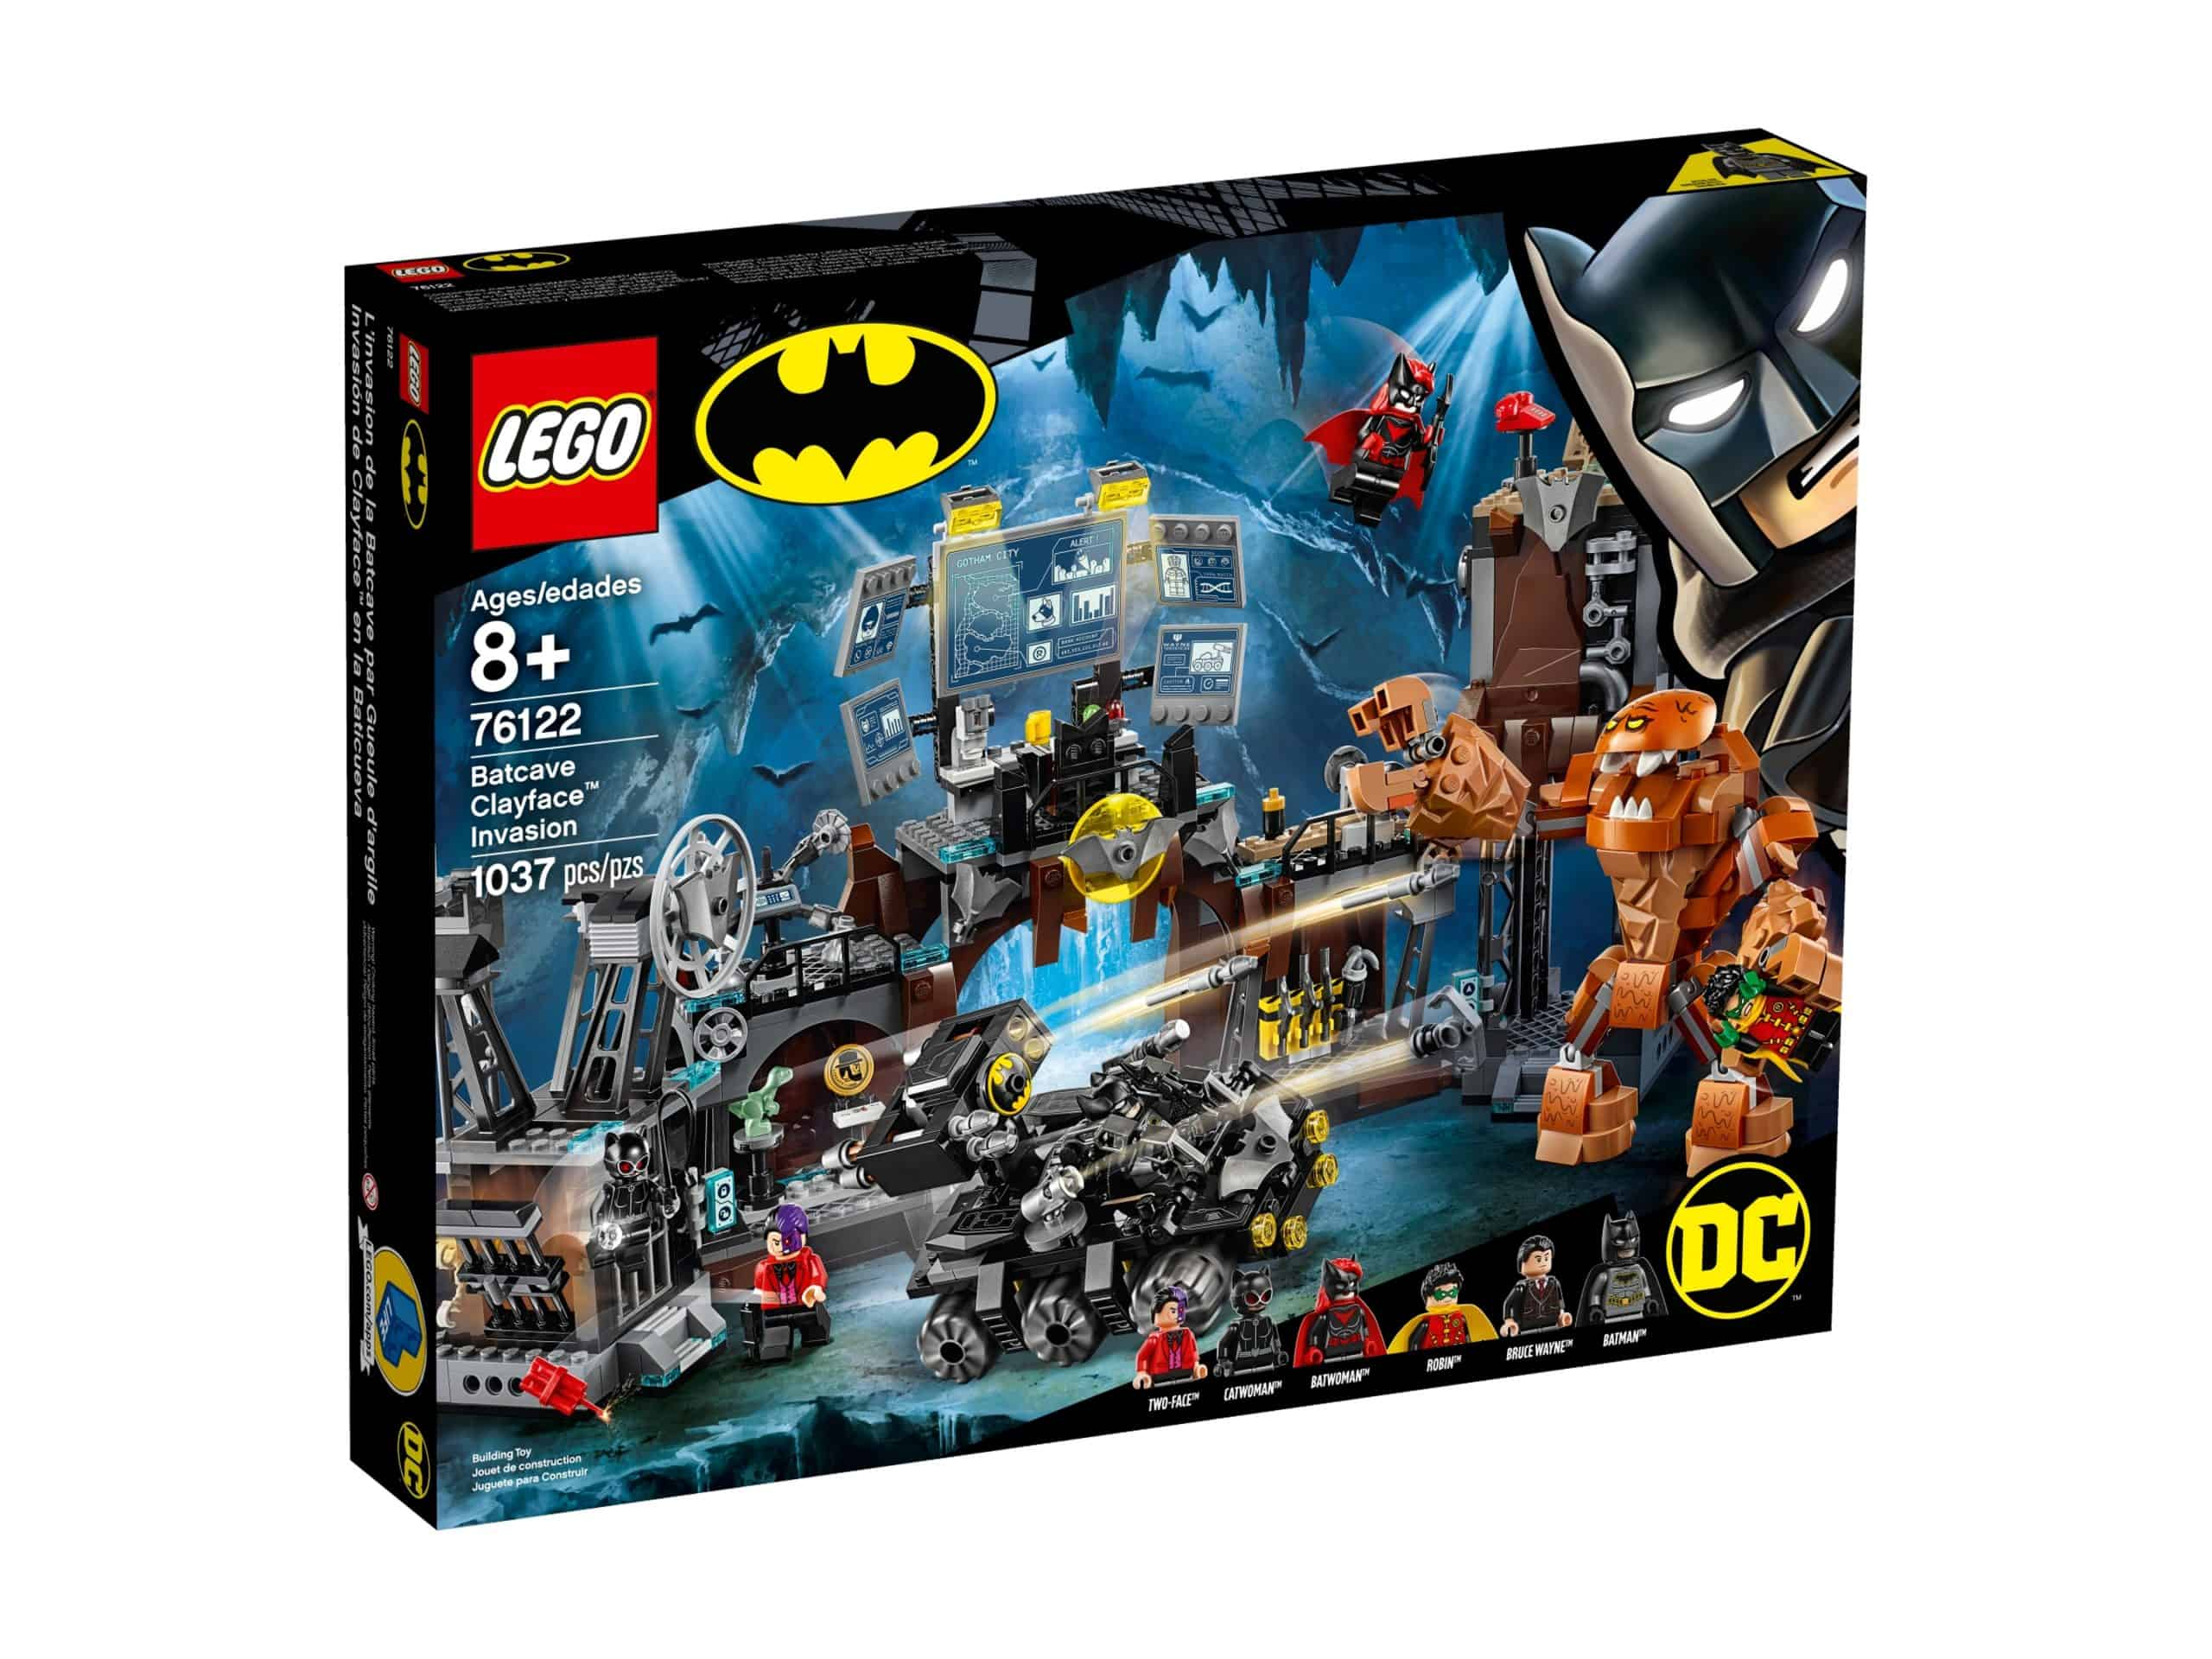 lego 76122 clayface invasion in die bathohle scaled